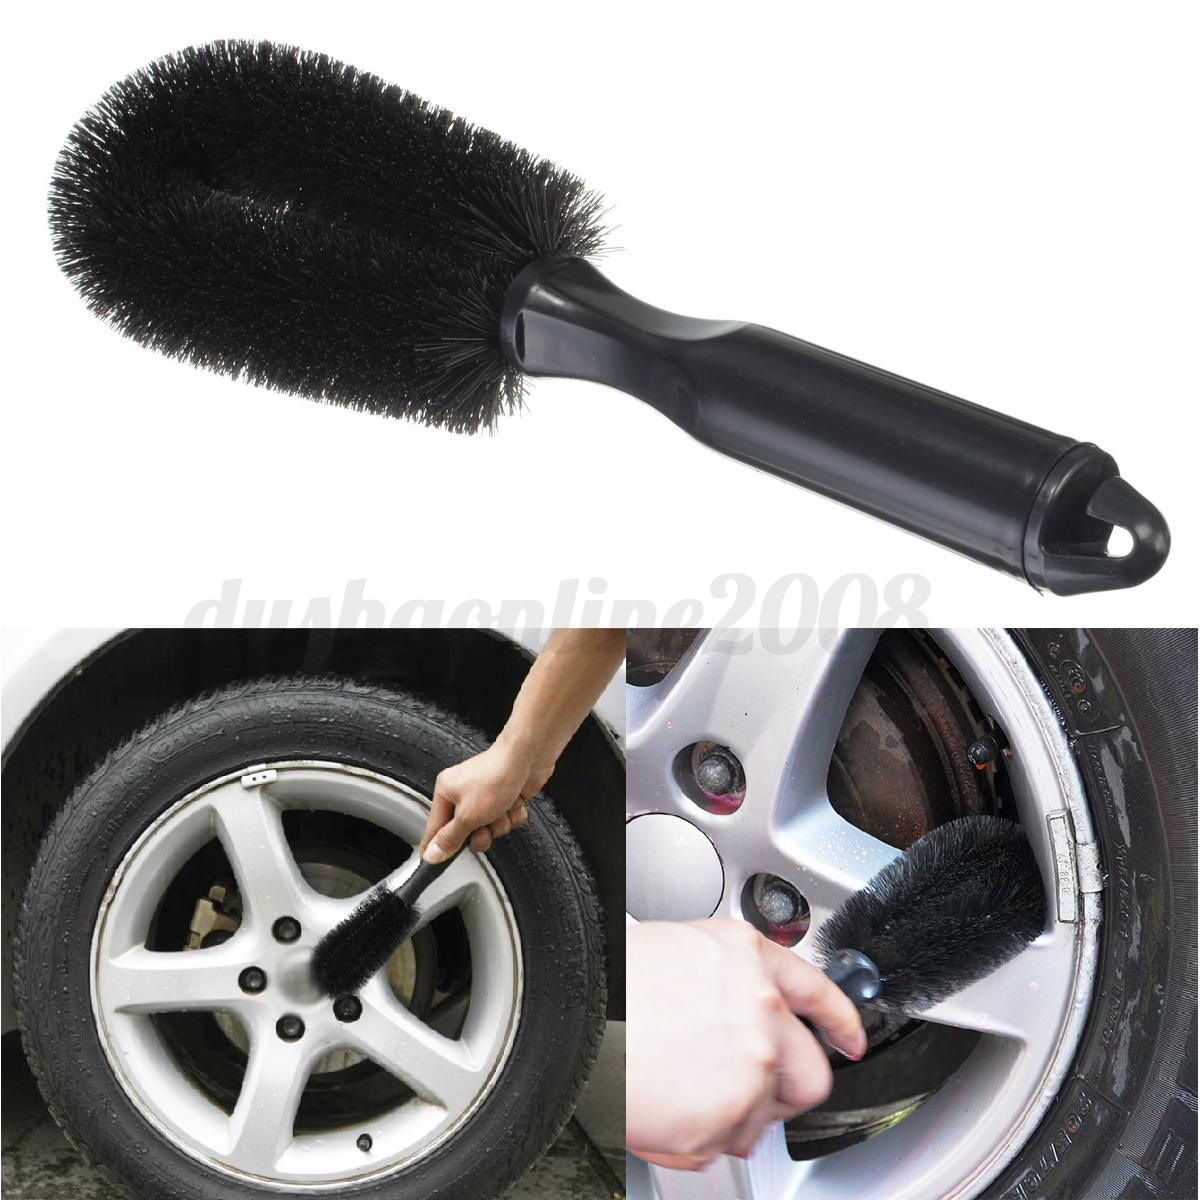 roue brosse de nettoyage nettoyer voiture v lo bicyclette moto pneu jante outil ebay. Black Bedroom Furniture Sets. Home Design Ideas